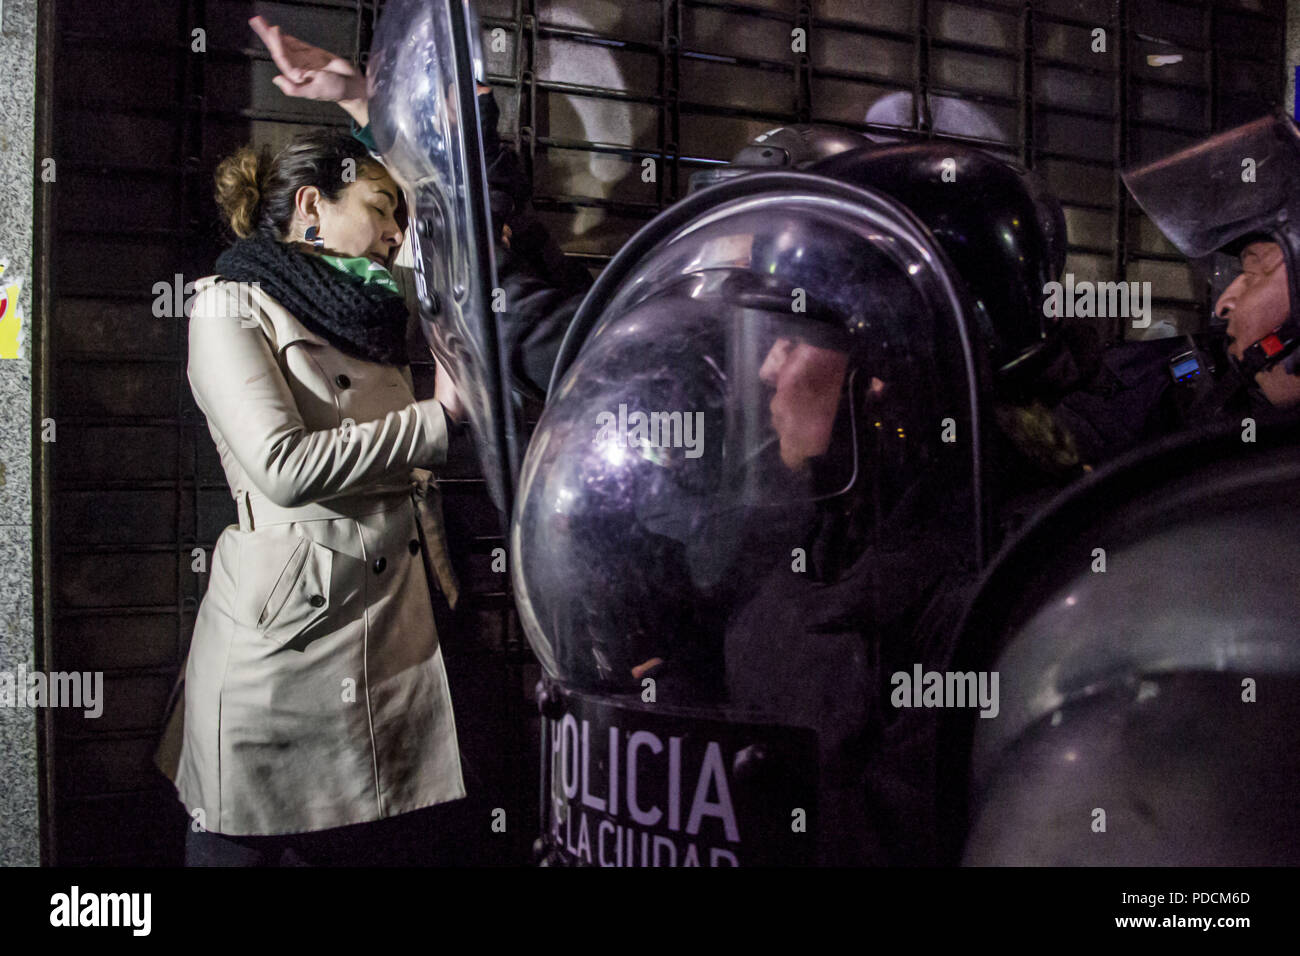 Buenos Aires, Argentina. 9th Aug, 2018. The Vigil by Law of the Abortion culminated in strong operation of security on the part of the Police of the City of Buenos Aires after knowing the decision of the Senate against the approval of the law. The Buenos Aires Police prevented the work of the press. Credit: Roberto Almeida Aveledo/ZUMA Wire/Alamy Live News - Stock Image